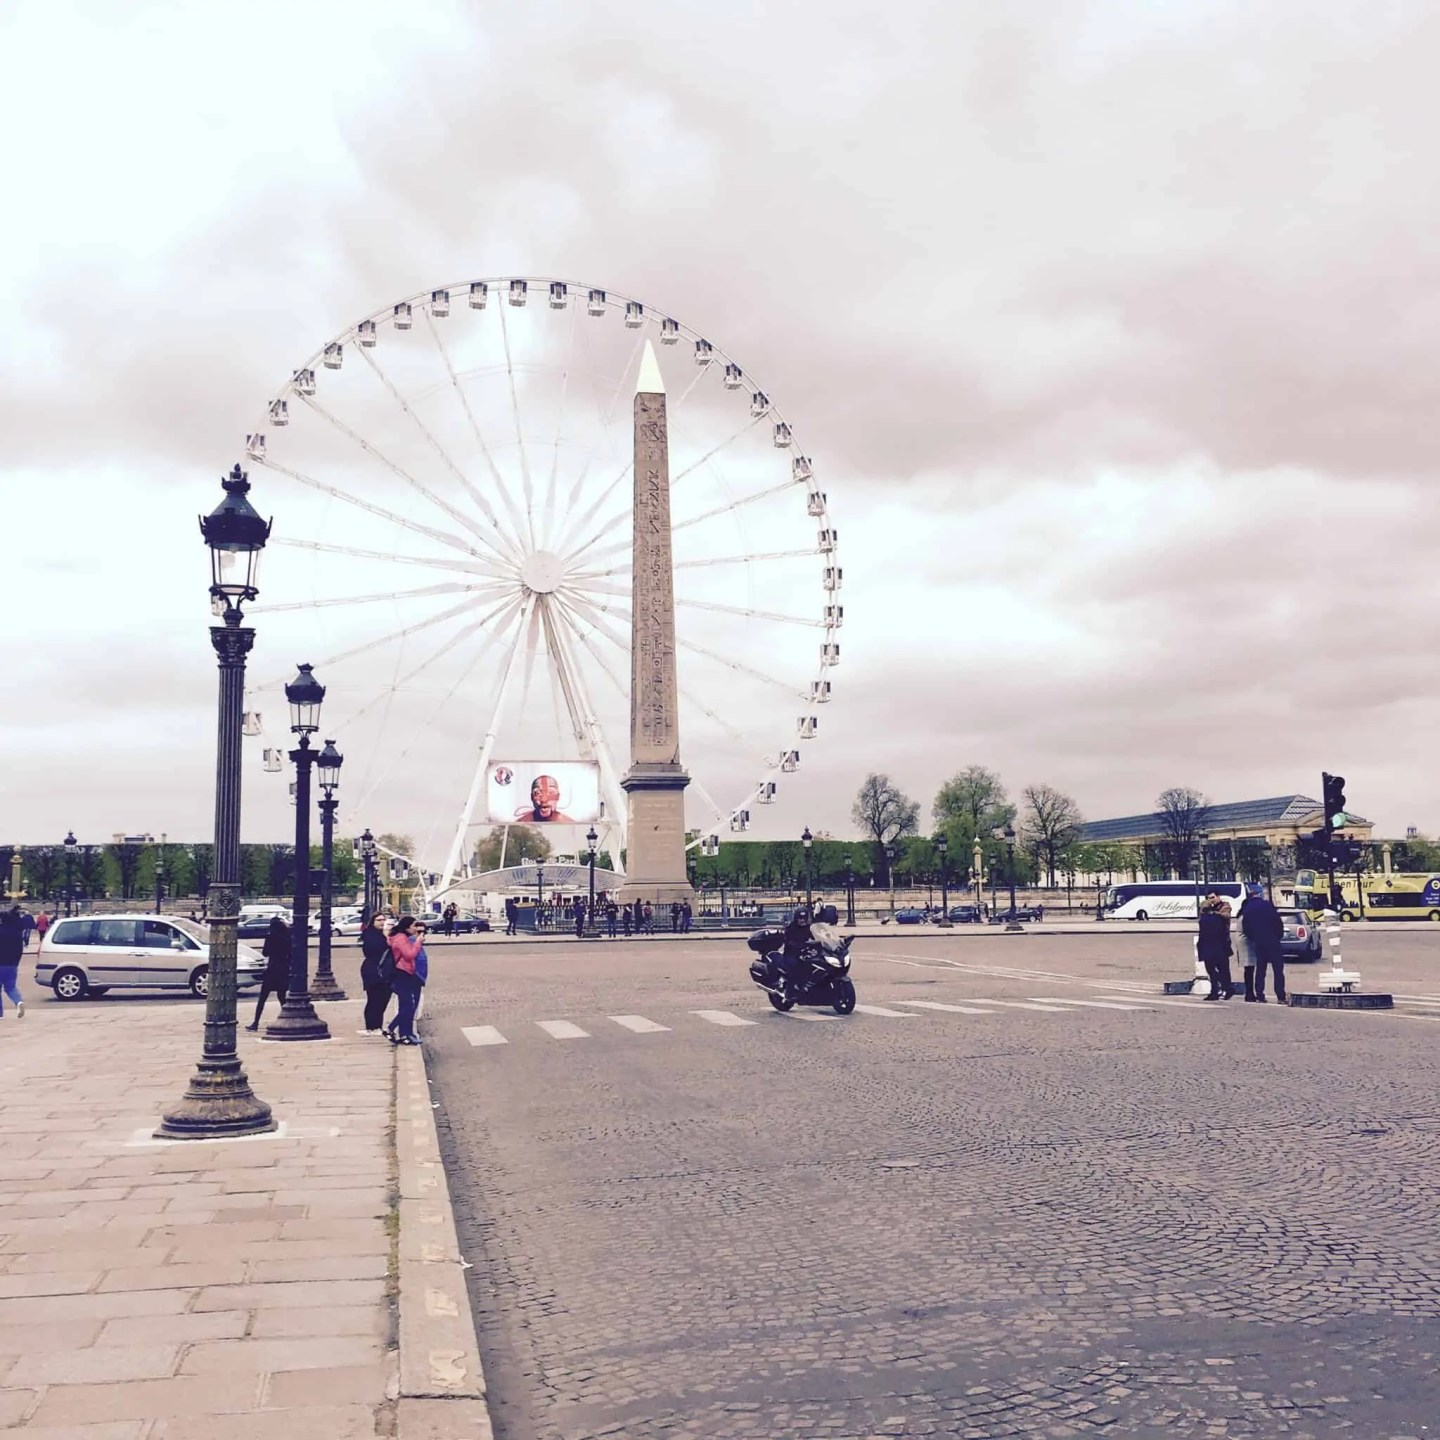 Paris Main Attractions In One Day: Best Time To Visit Paris And Its Top 10 Tourist Attractions